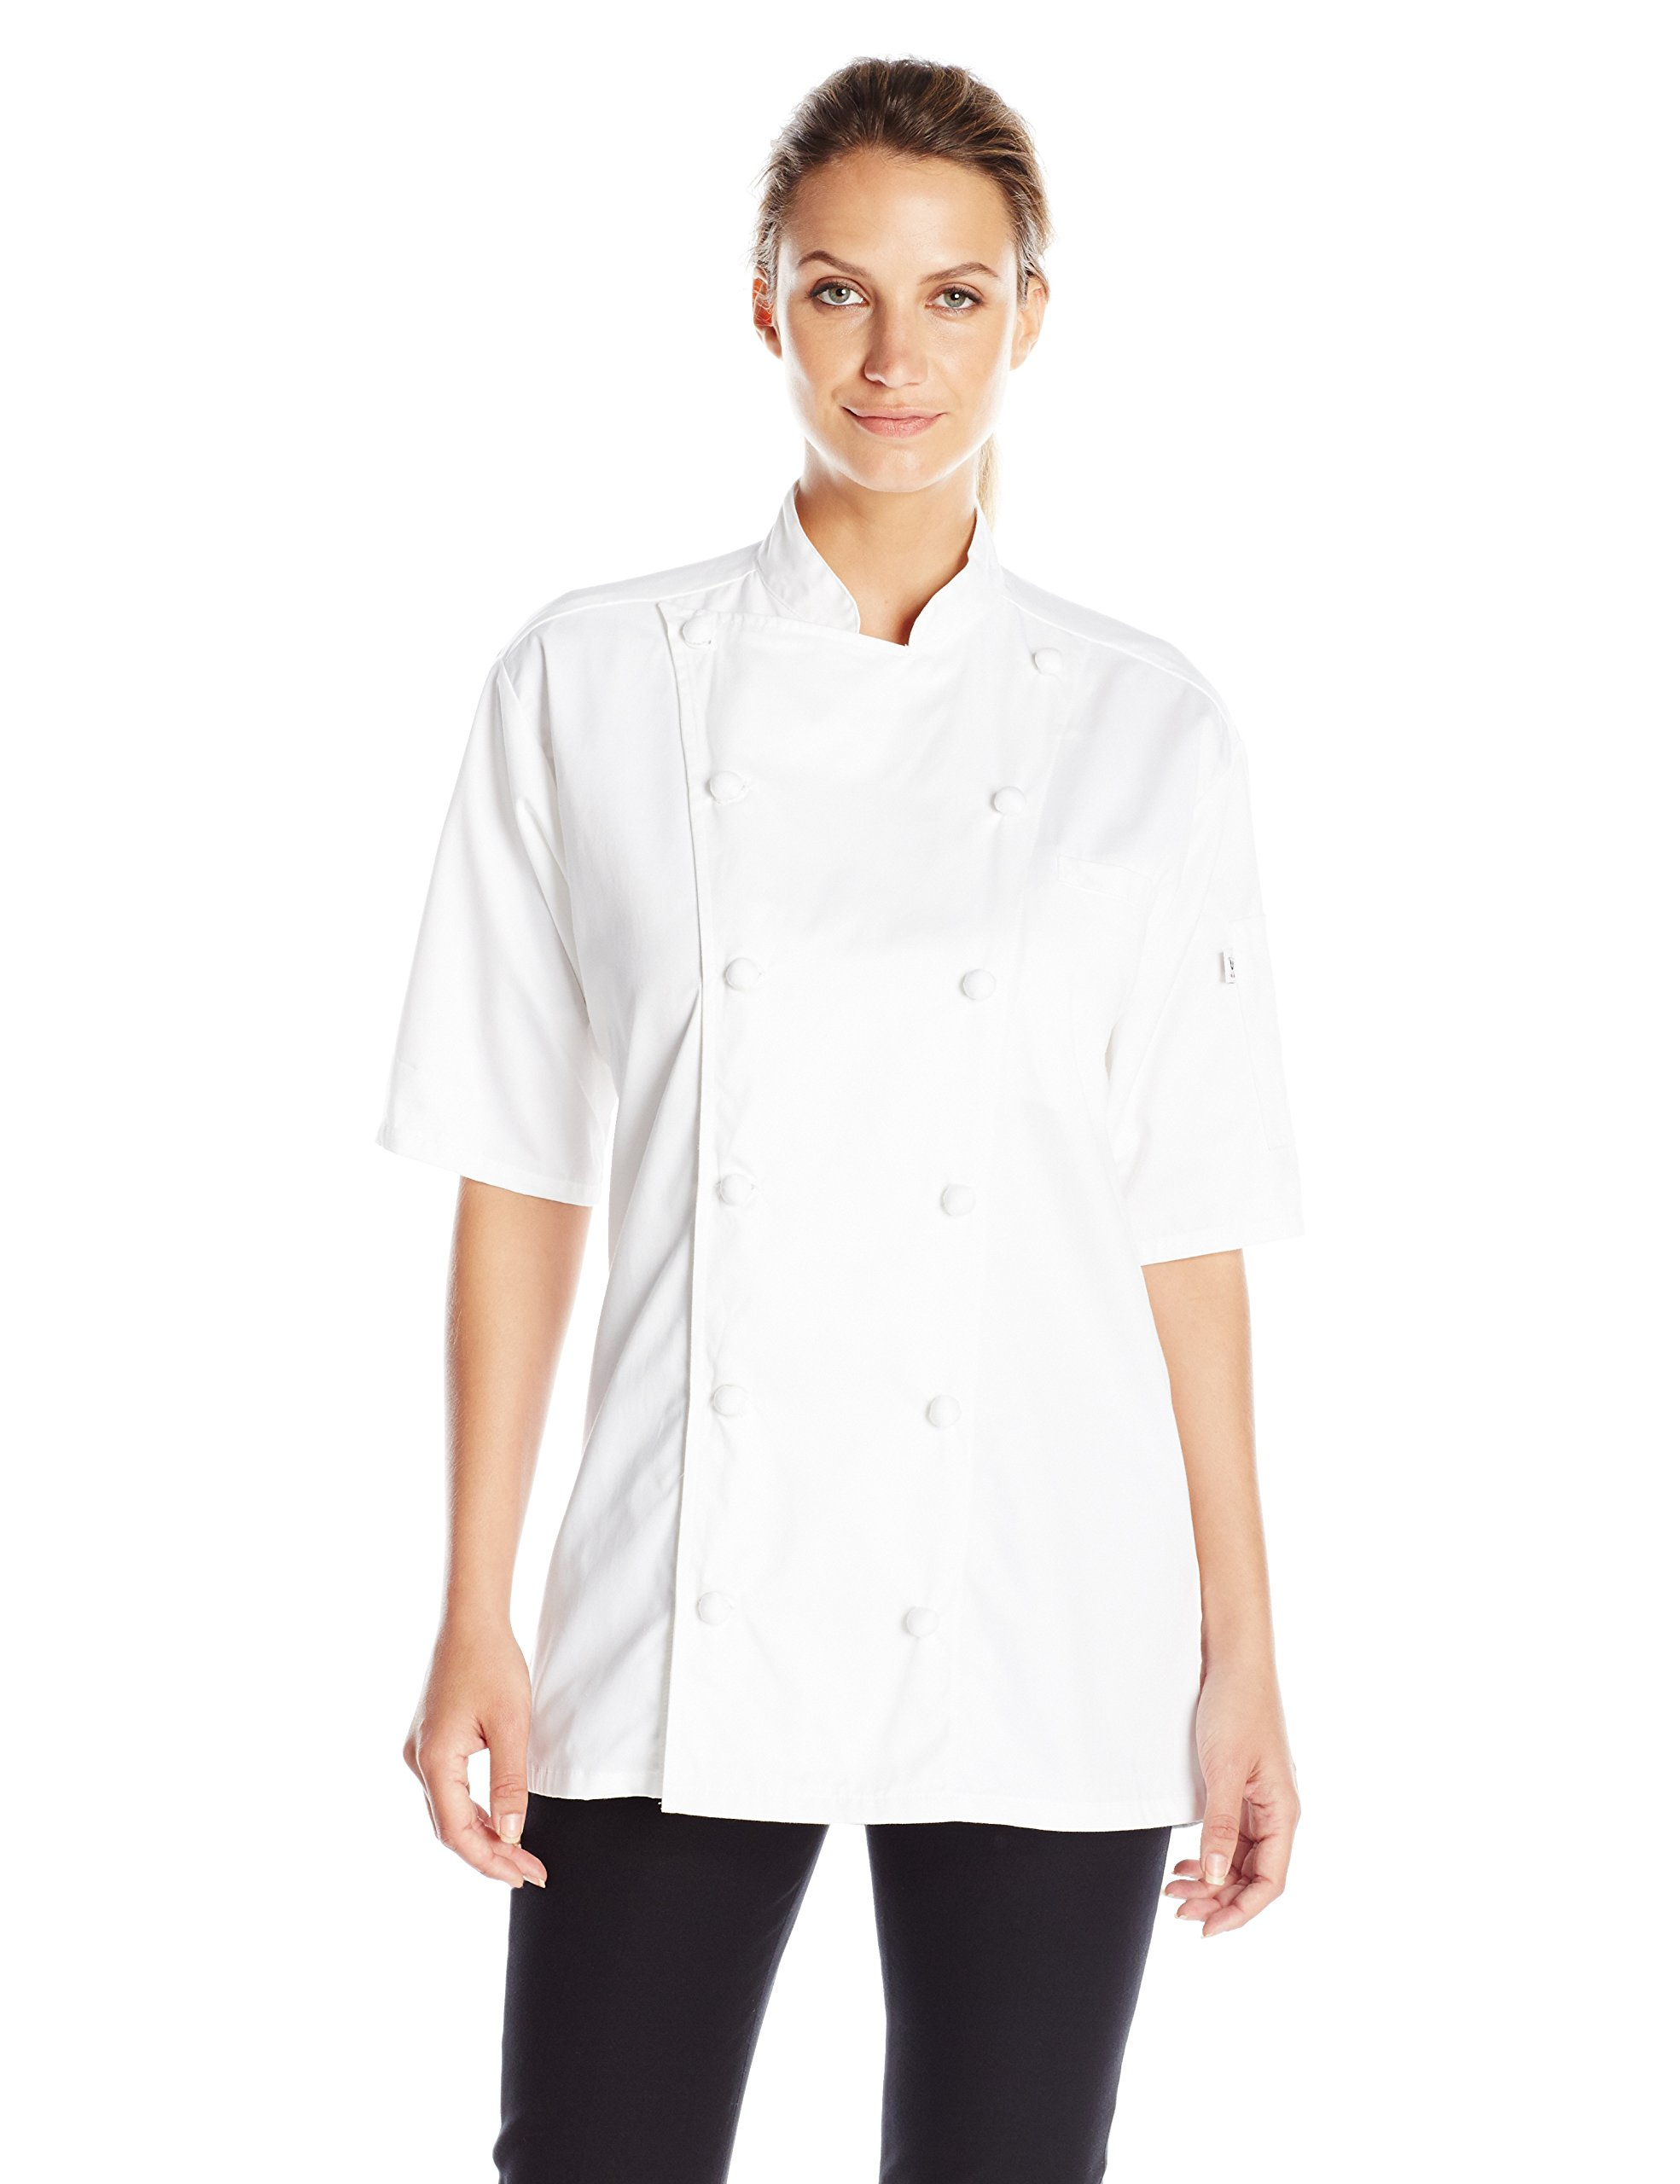 Uncommon Threads Unisex  S/s Master Chef, White, Medium by Uncommon Threads